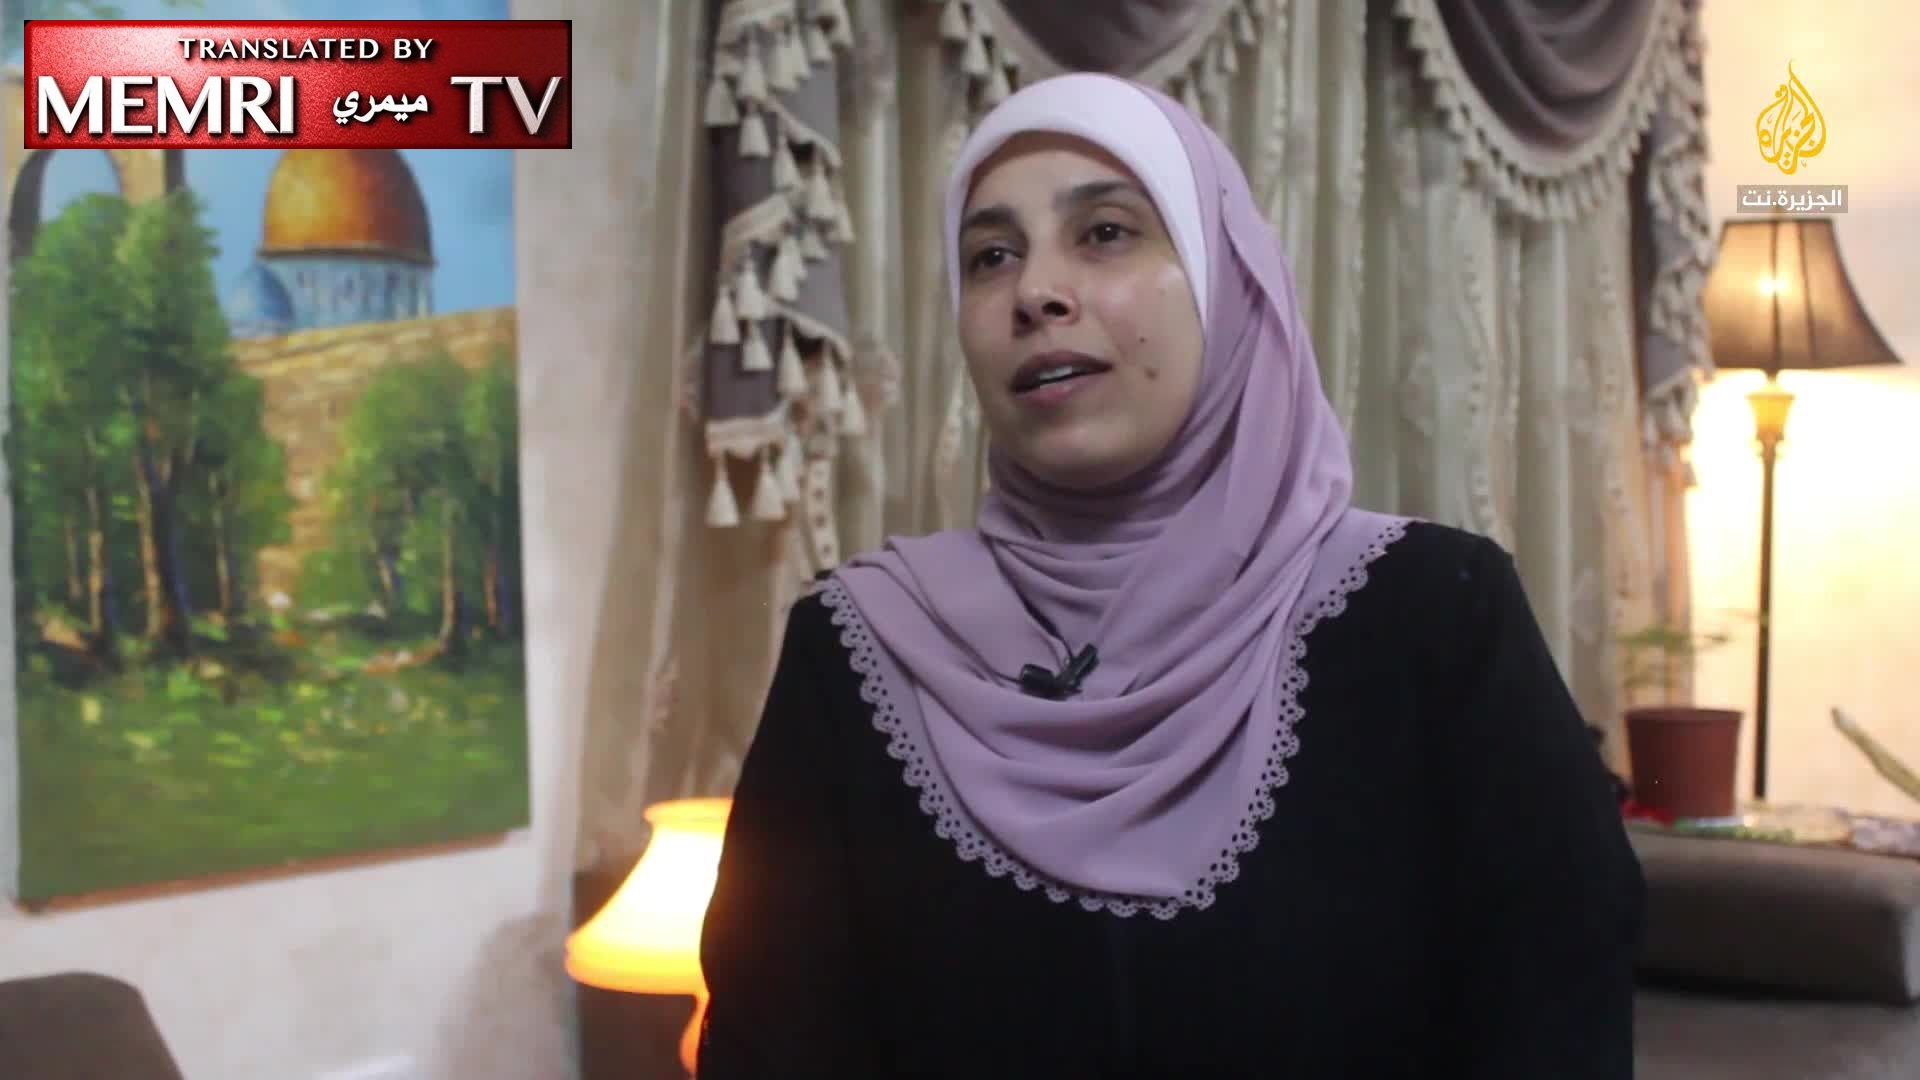 Released Palestinian Terrorist Ahlam Tamimi, Who Is on FBI Most Wanted List: Being in Jordan Gives Me Strength Because No Extradition Agreement With U.S.